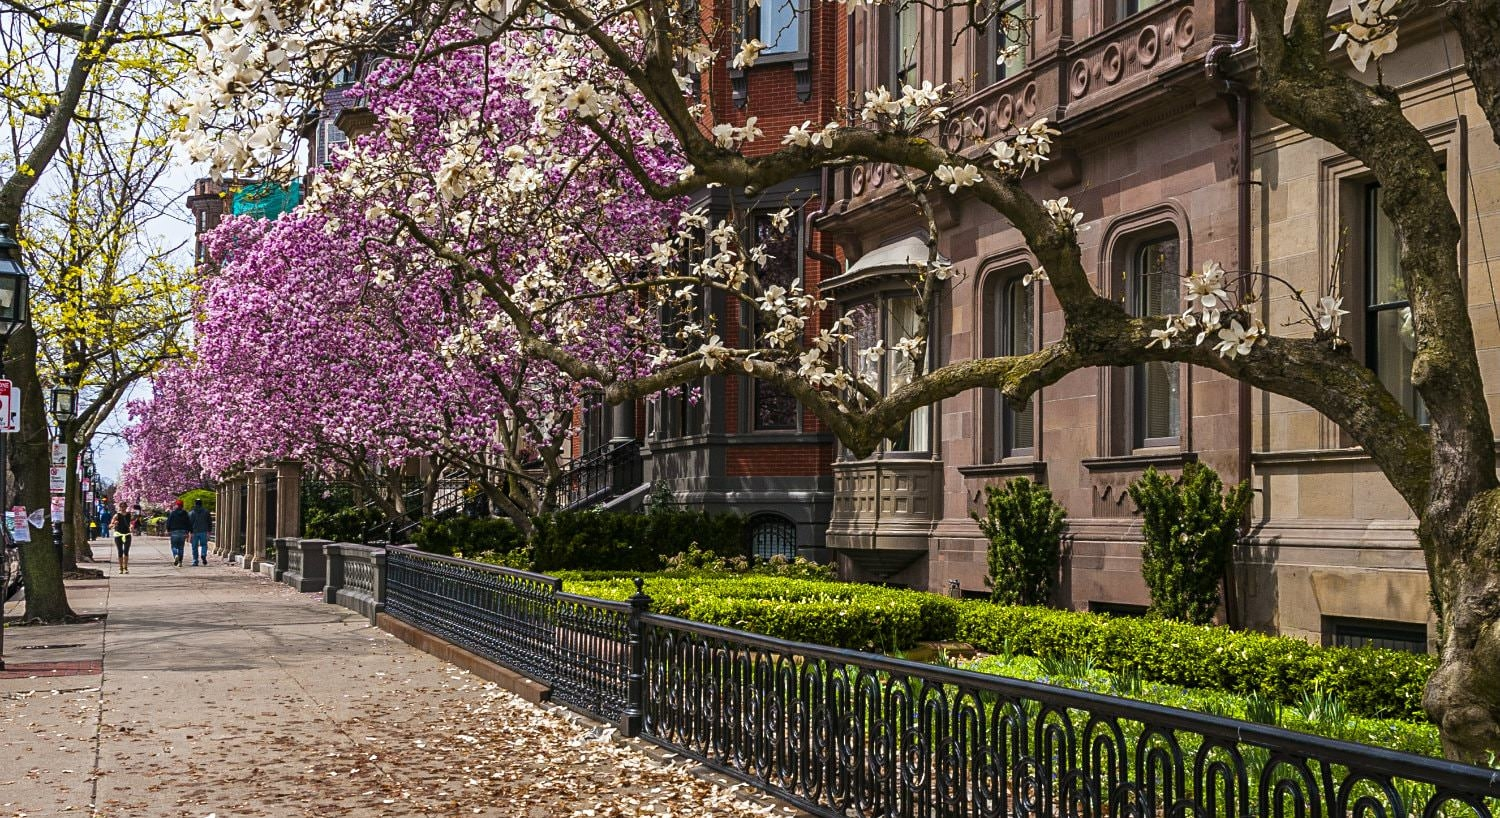 sidewalk next to a row of brownstones with black iron railings and purple and white flowering trees